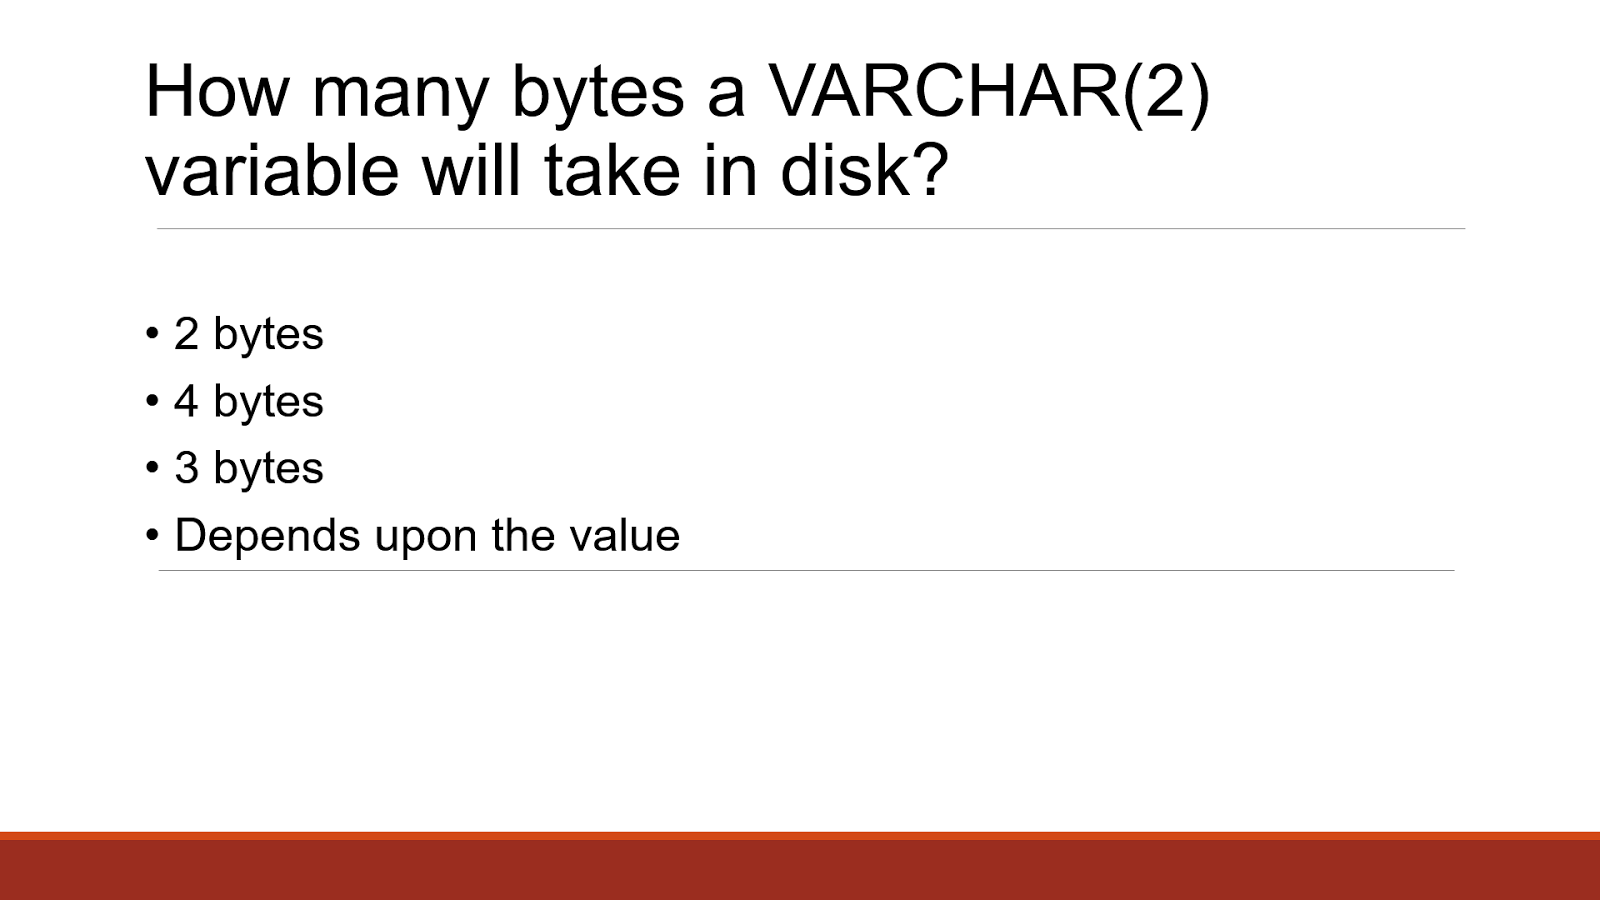 How many characters is allowed on VARCHAR(n) columns in SQL